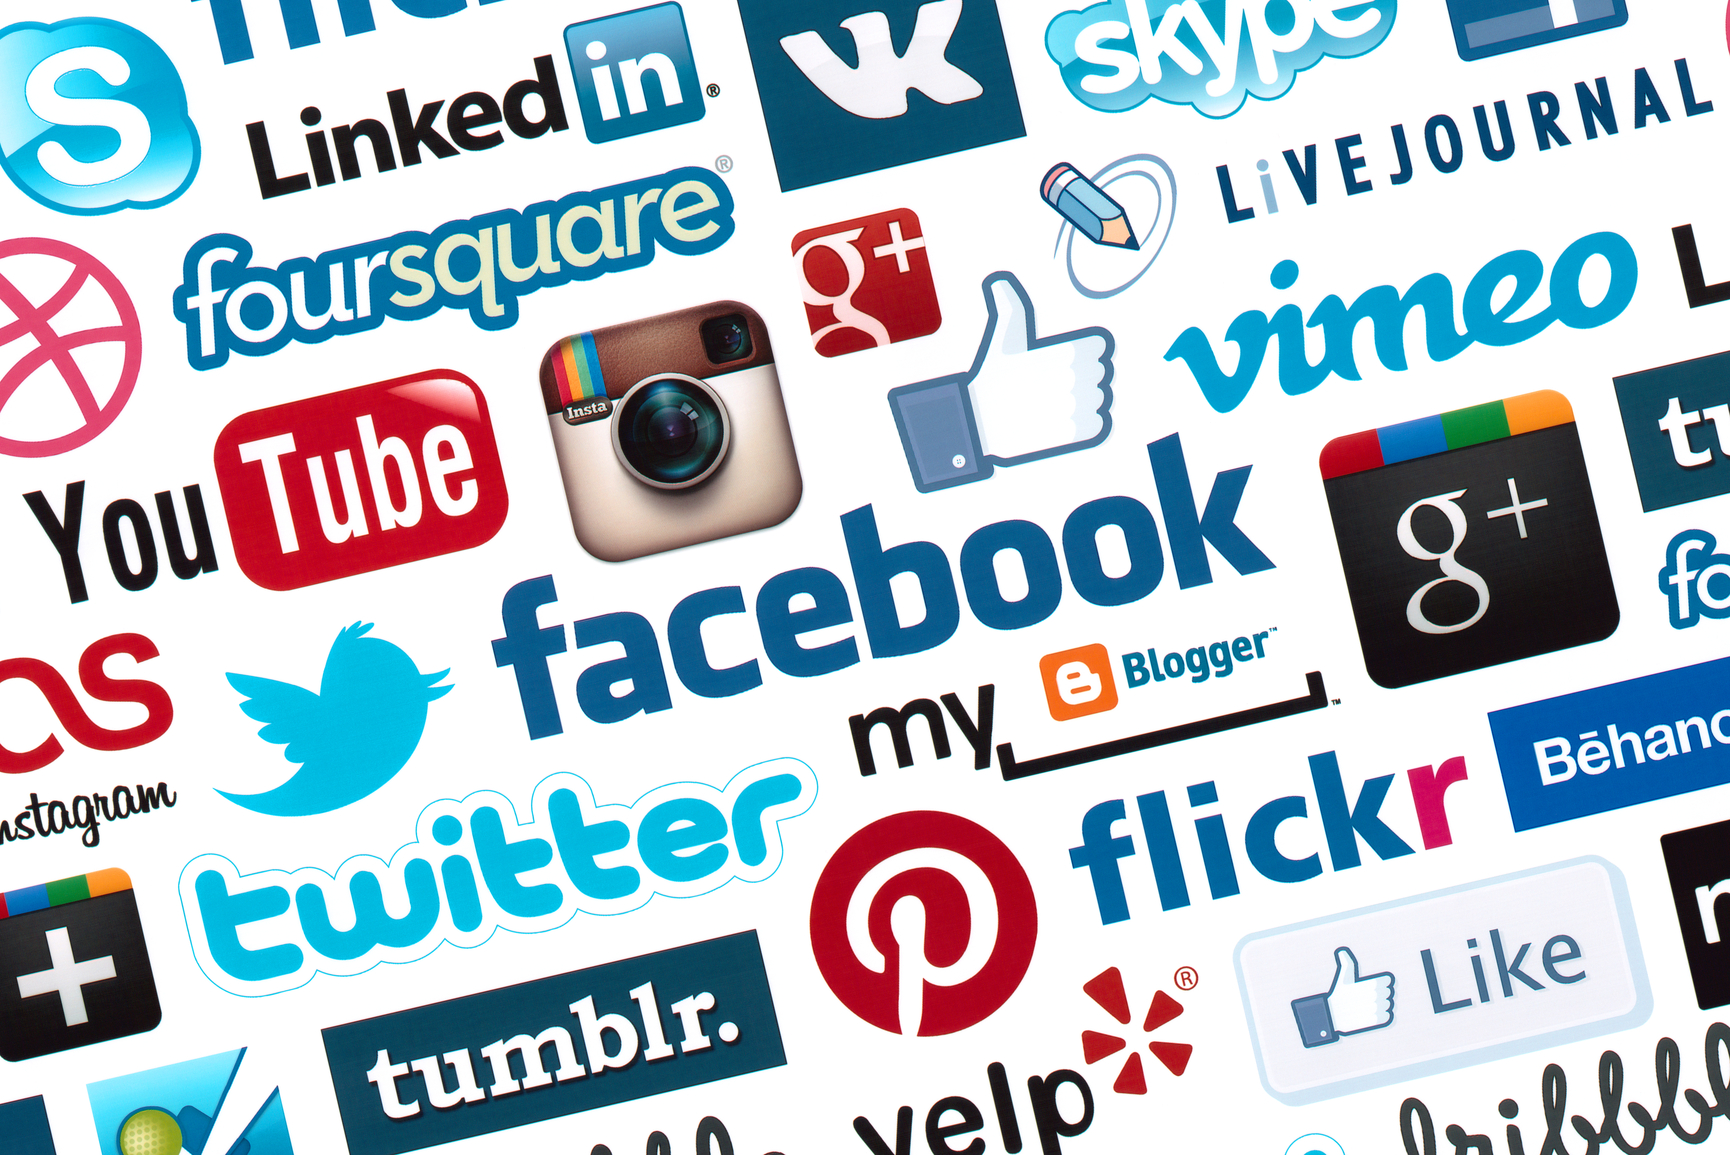 Why Social Media is Integral to a Lawyers Professional Development